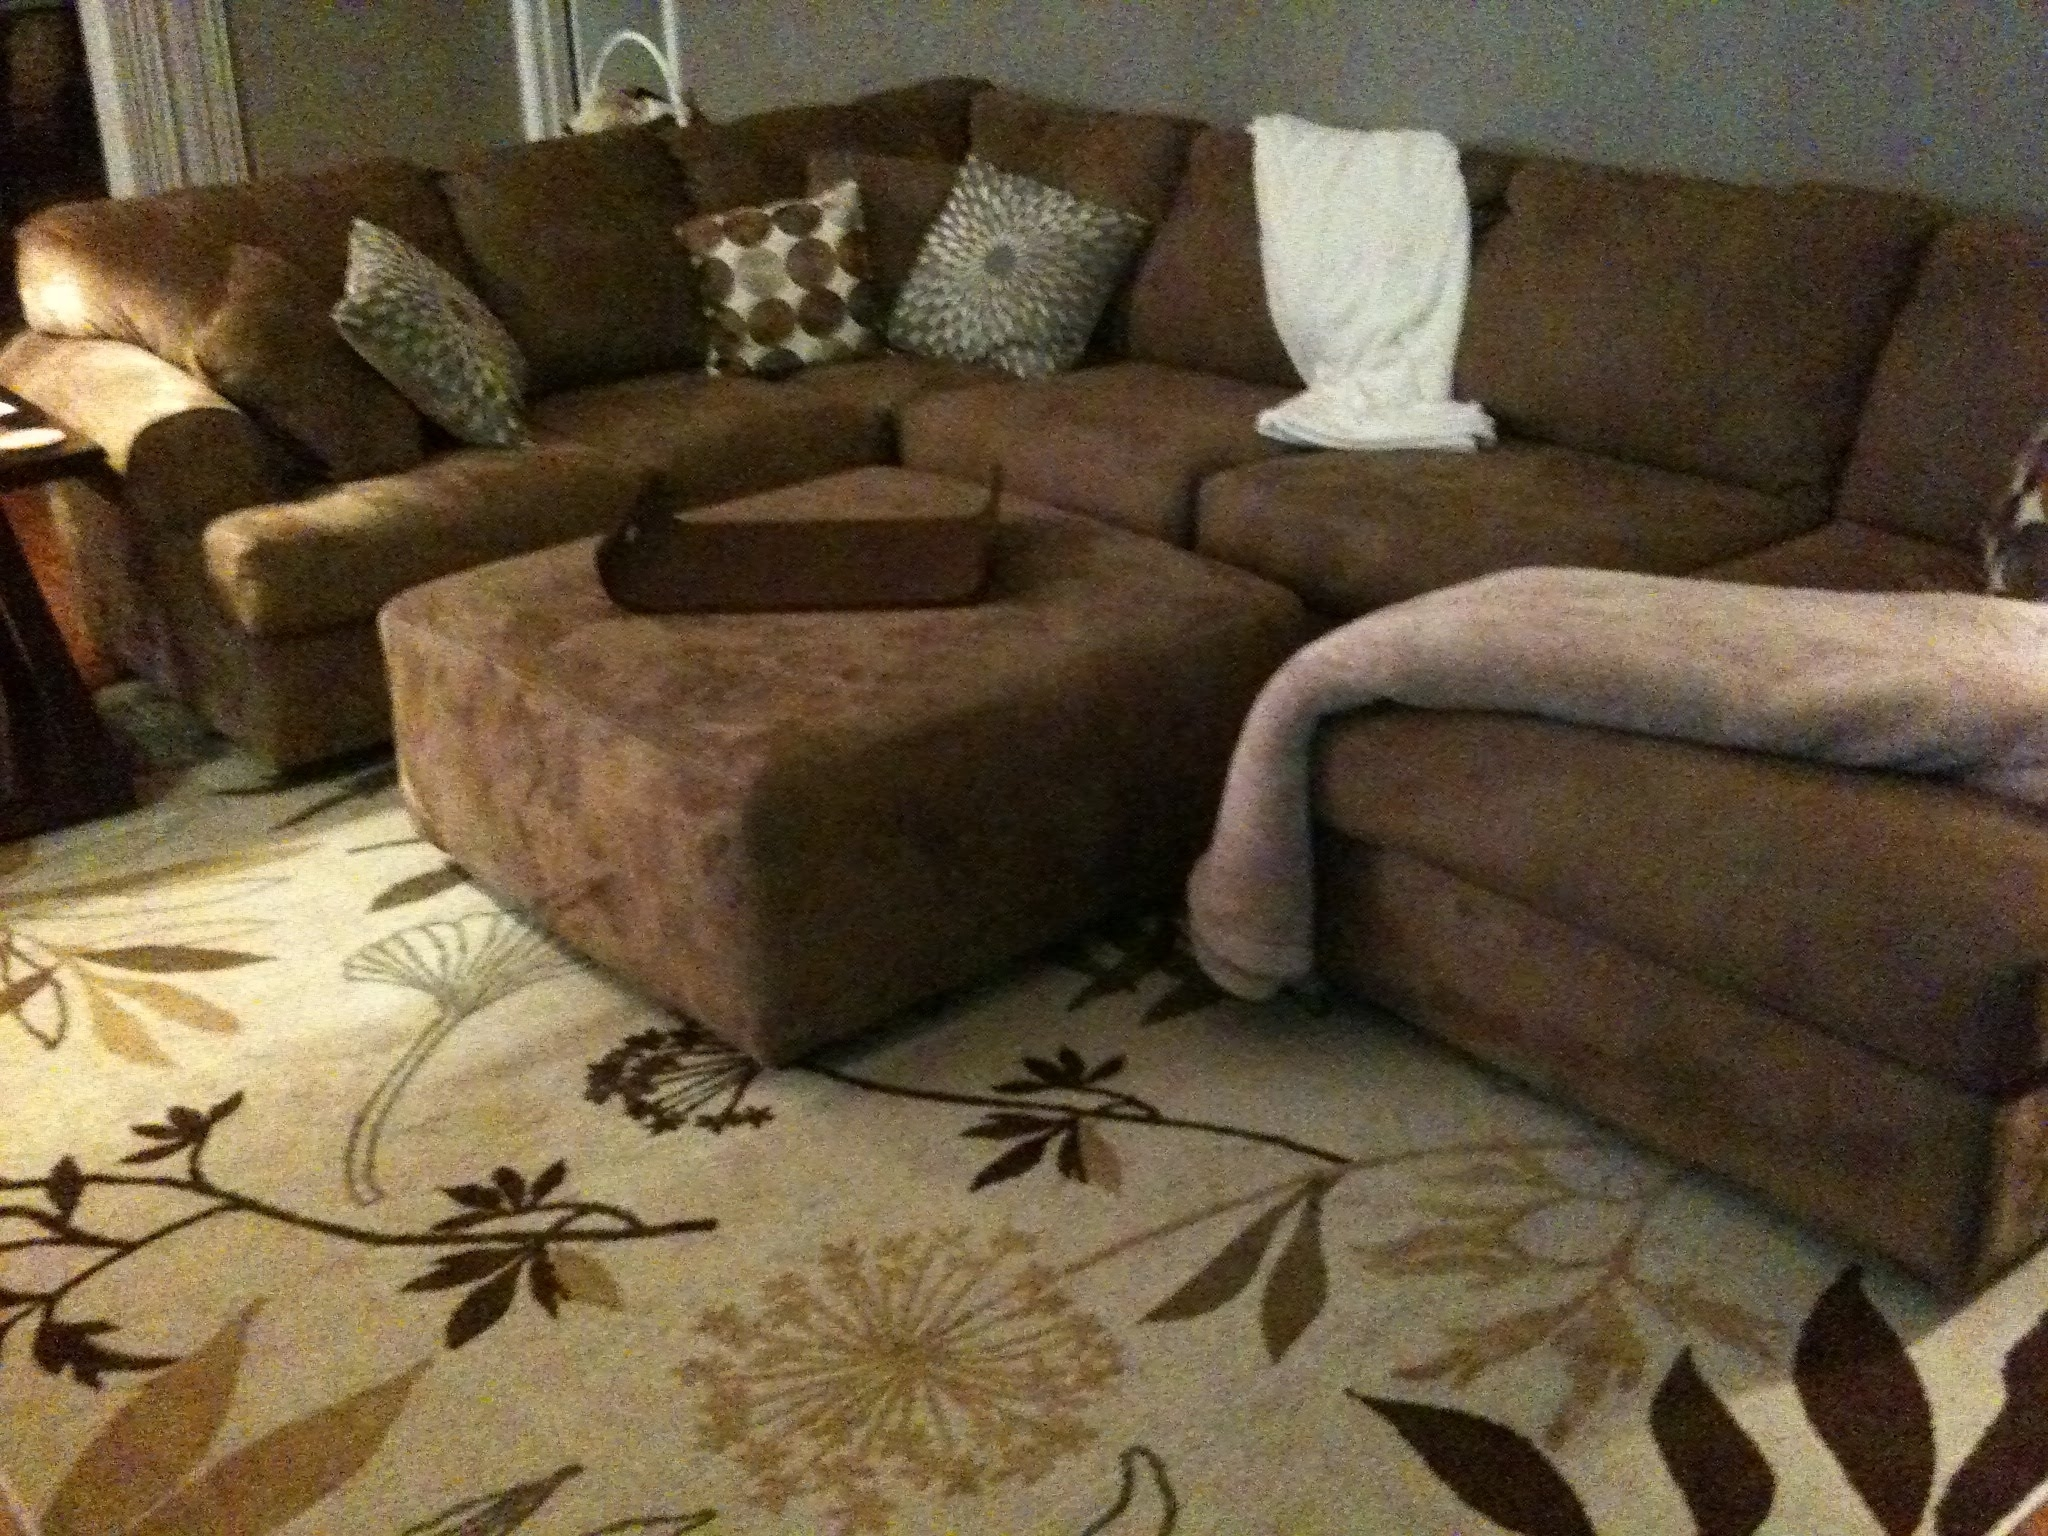 Fresh Sectional Sofas Big Lots (34 Photos) (View 14 of 20)